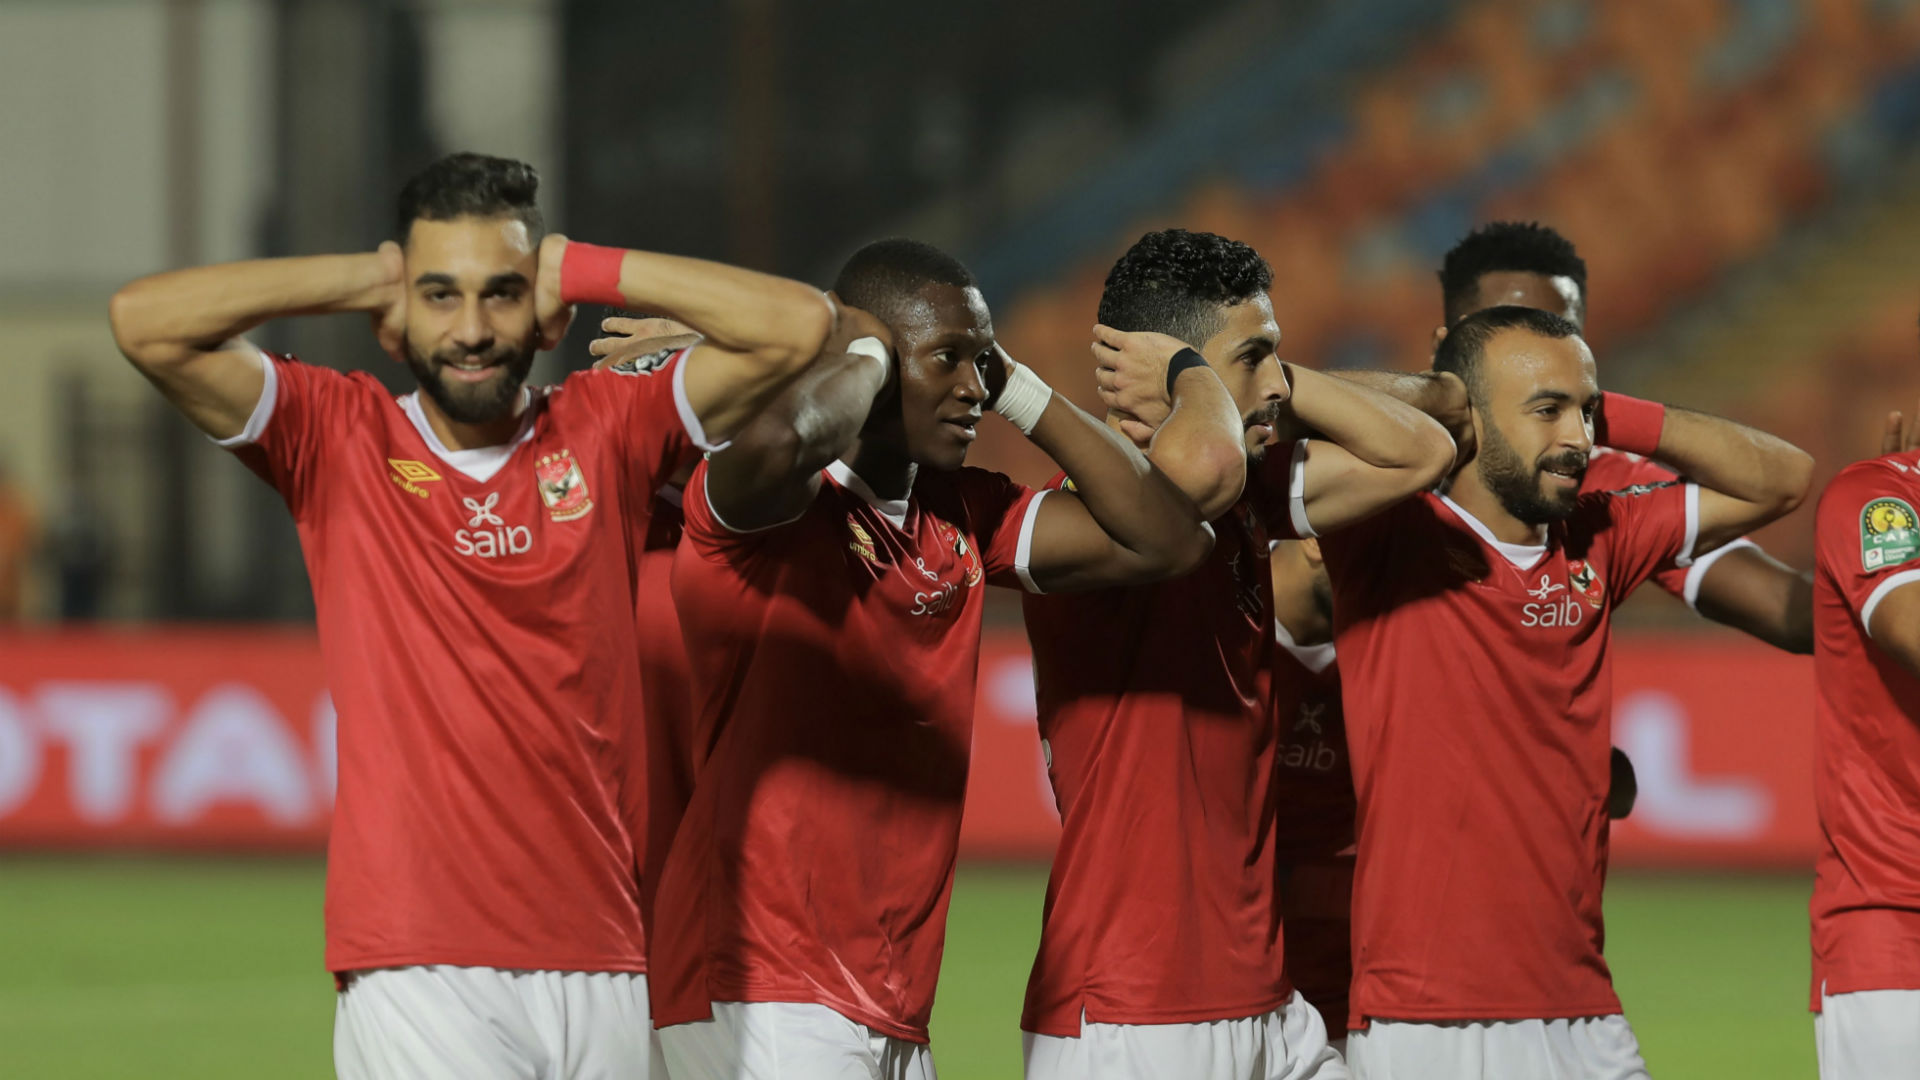 Al Ahly 3-1 Wydad Casablanca (5-1 agg): Record champions return to final